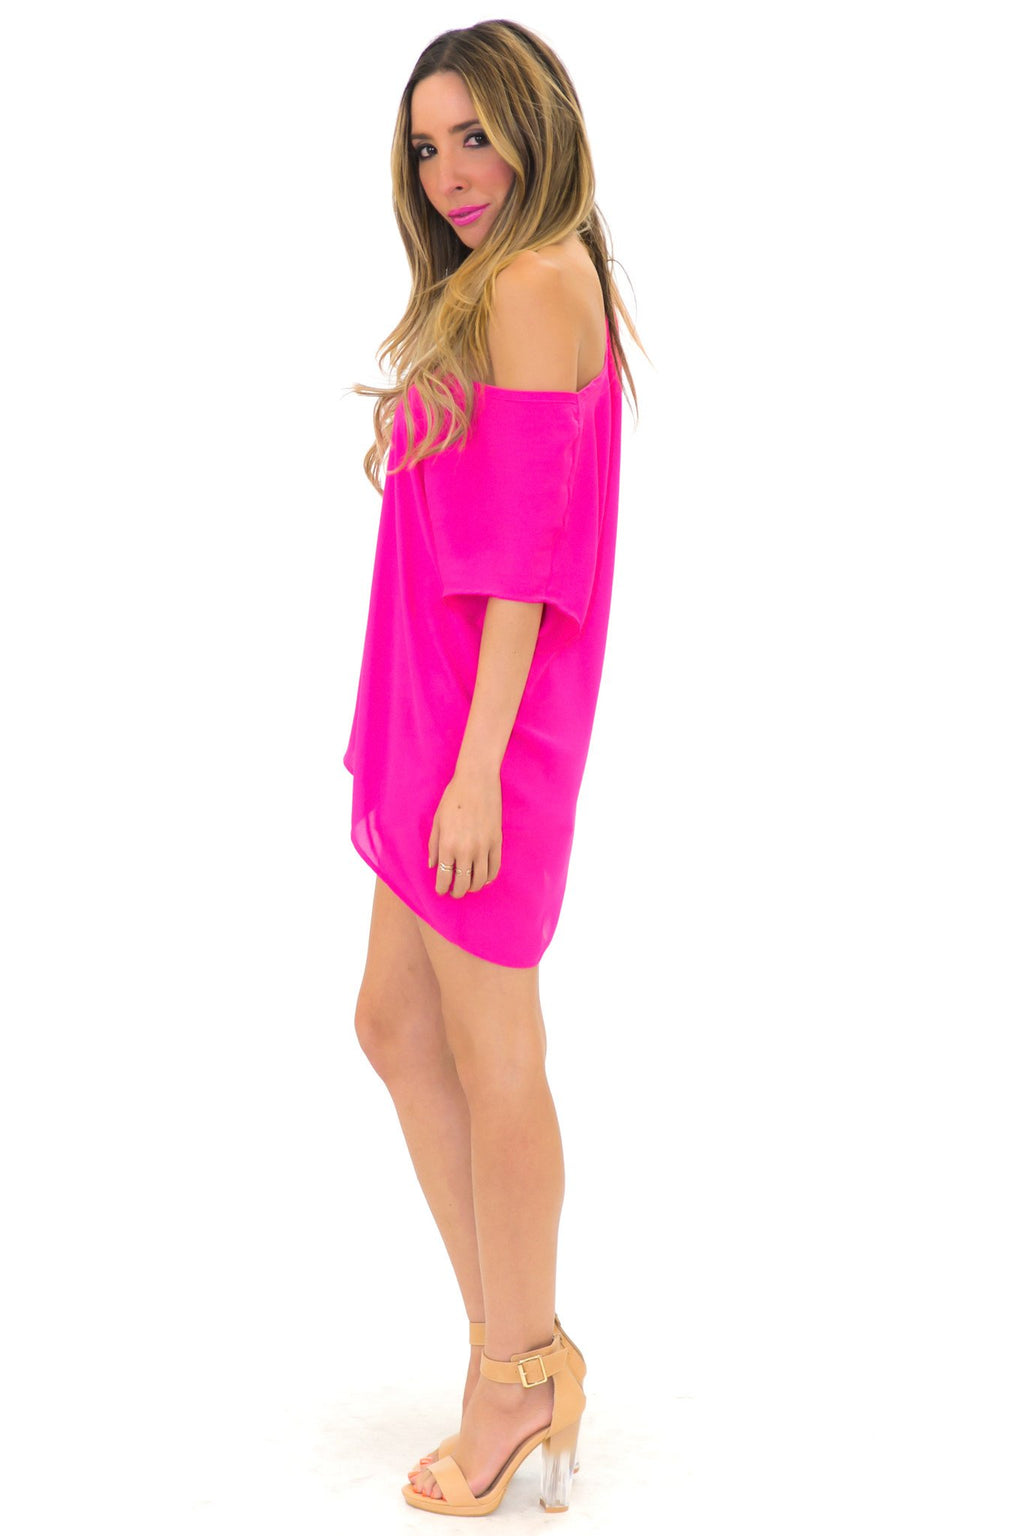 ADELLE BLOUSE - Electric Fuchsia - Haute & Rebellious